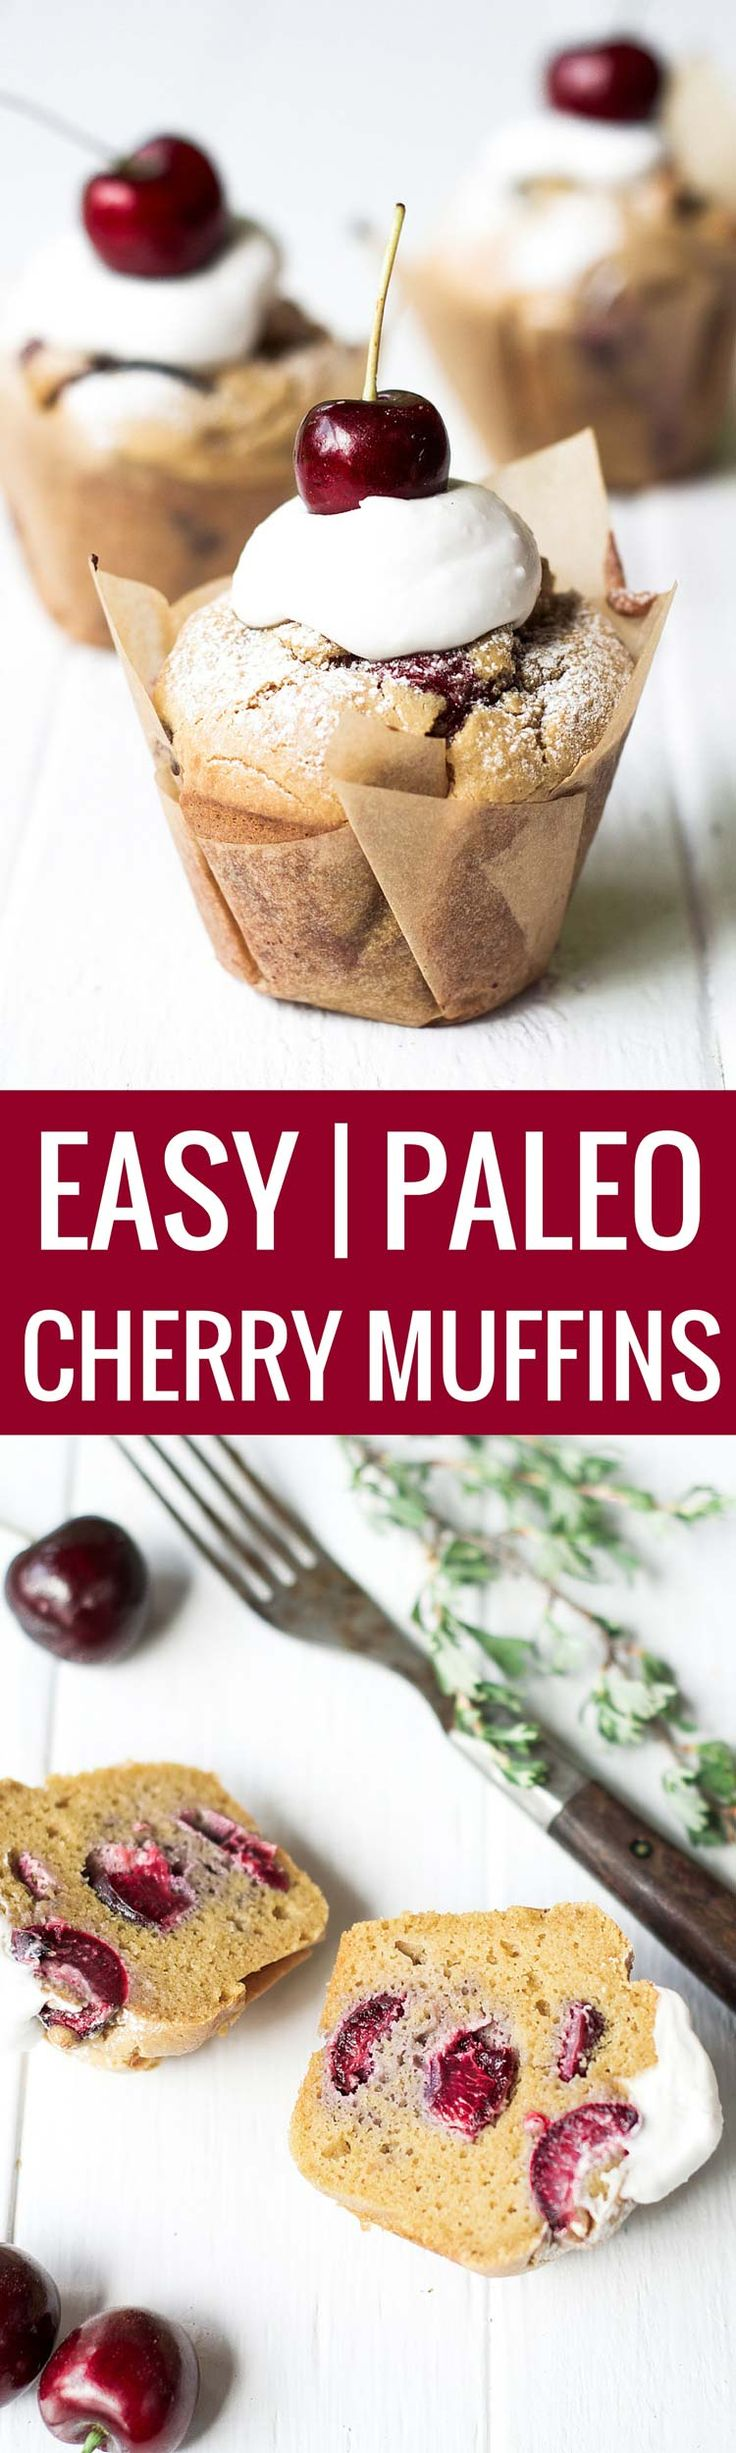 These light and fluffy cherry muffins are paleo and gluten free! Deliciously sweetened with natural sweeteners and fresh cherries this paleo…